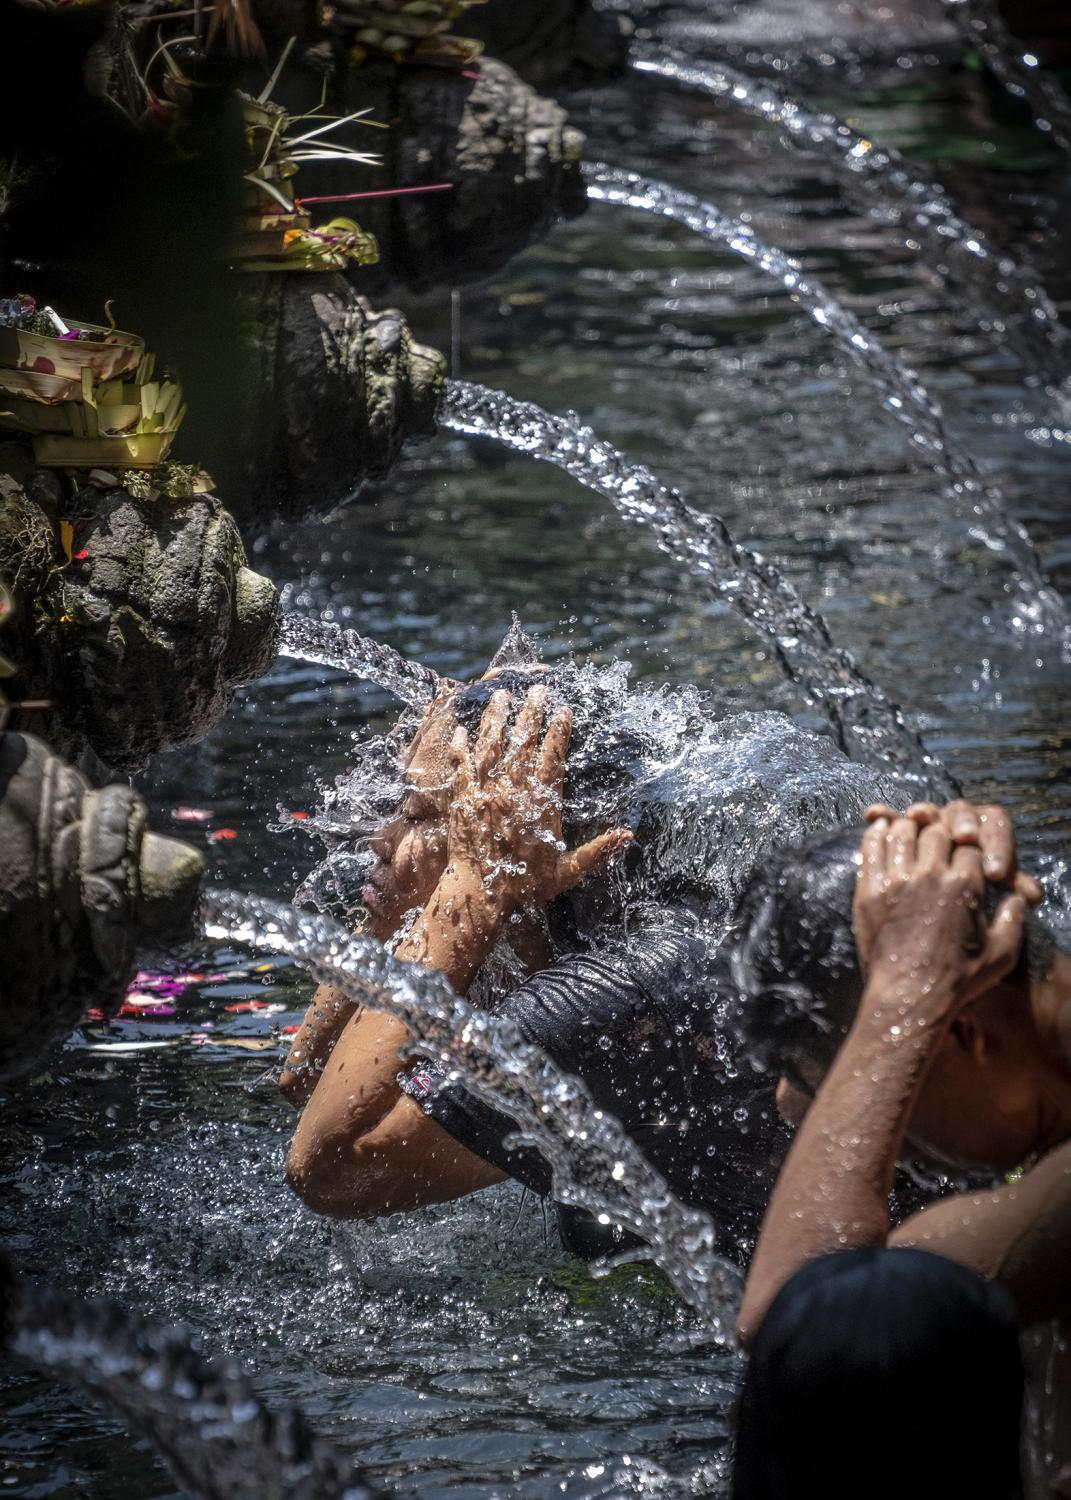 Worshipers bathe at Tirta Empul Temple in Bali, Indonesia.